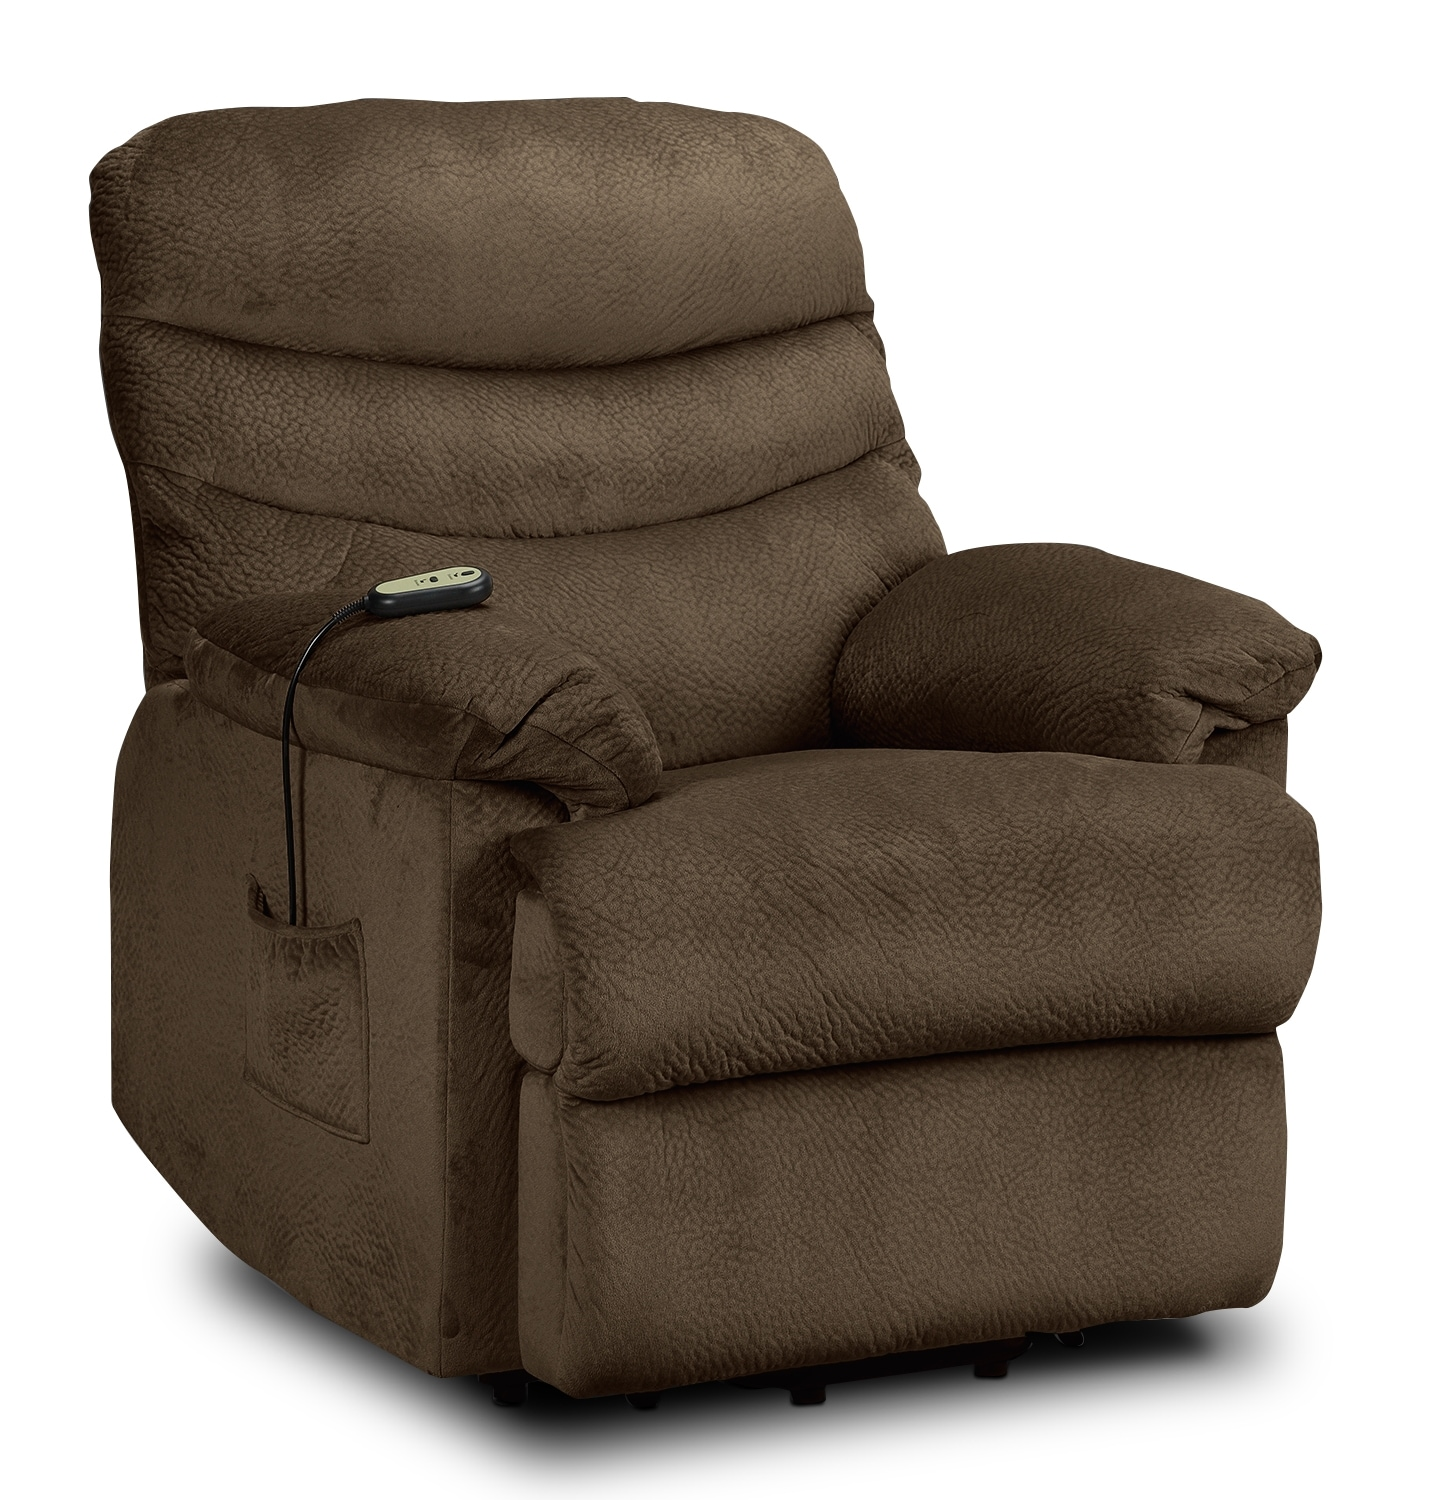 Living Room Furniture - Bradey Power Lift Recliner - Mocha